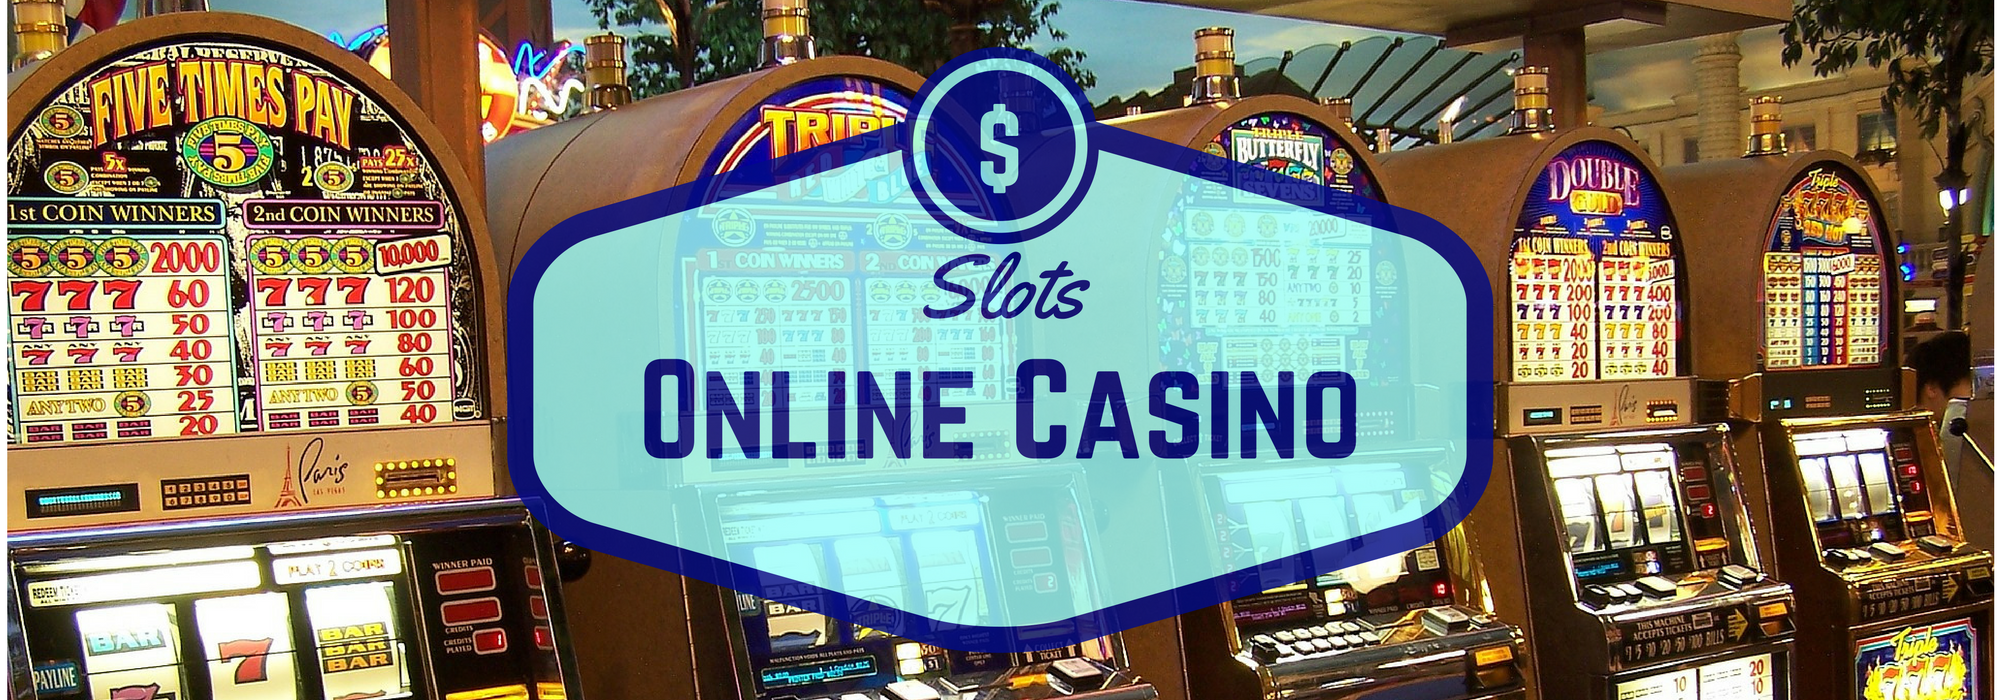 online casino strategie casino com